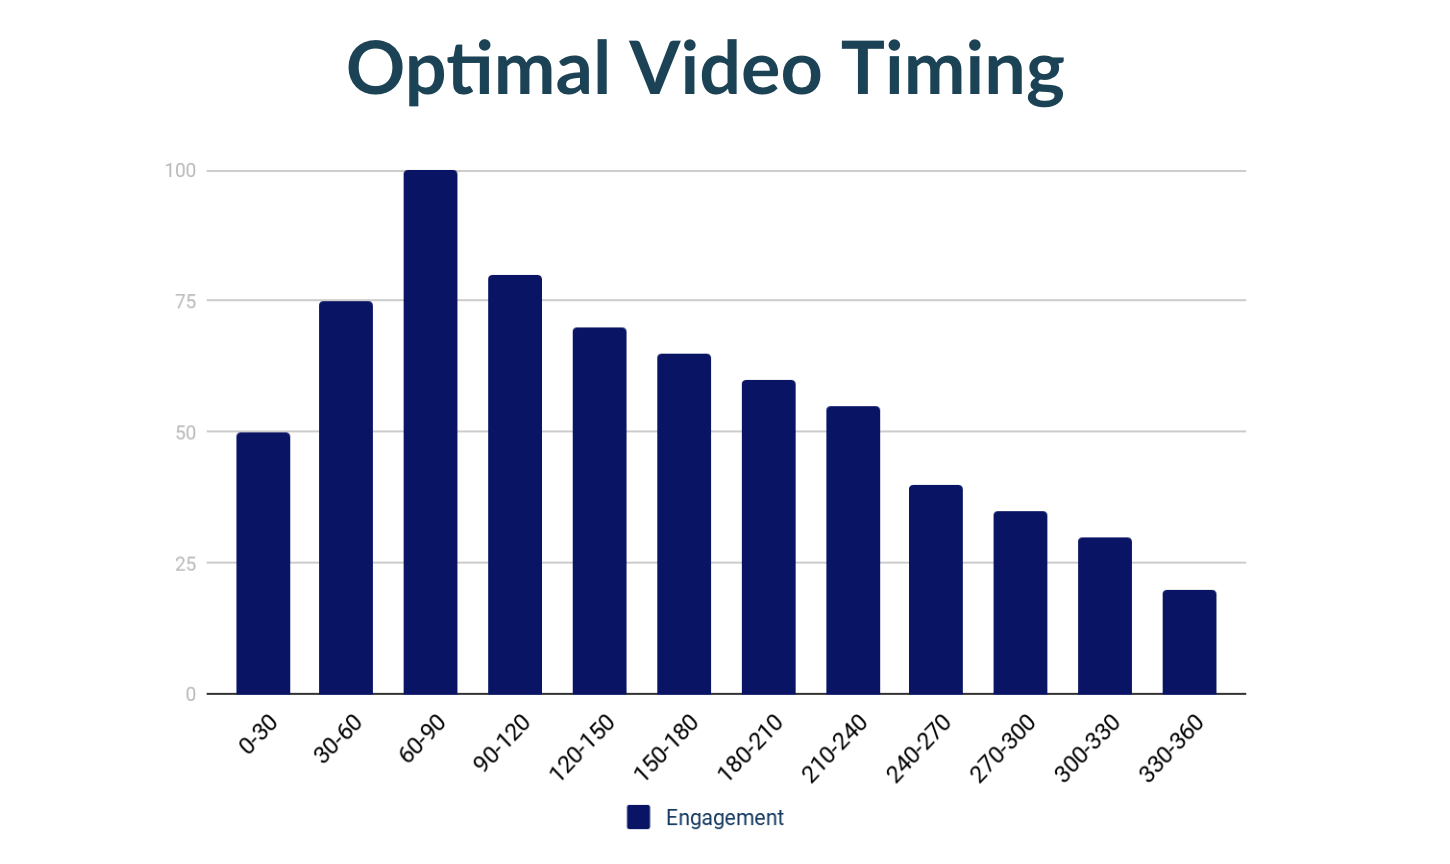 Optimal Video Timing